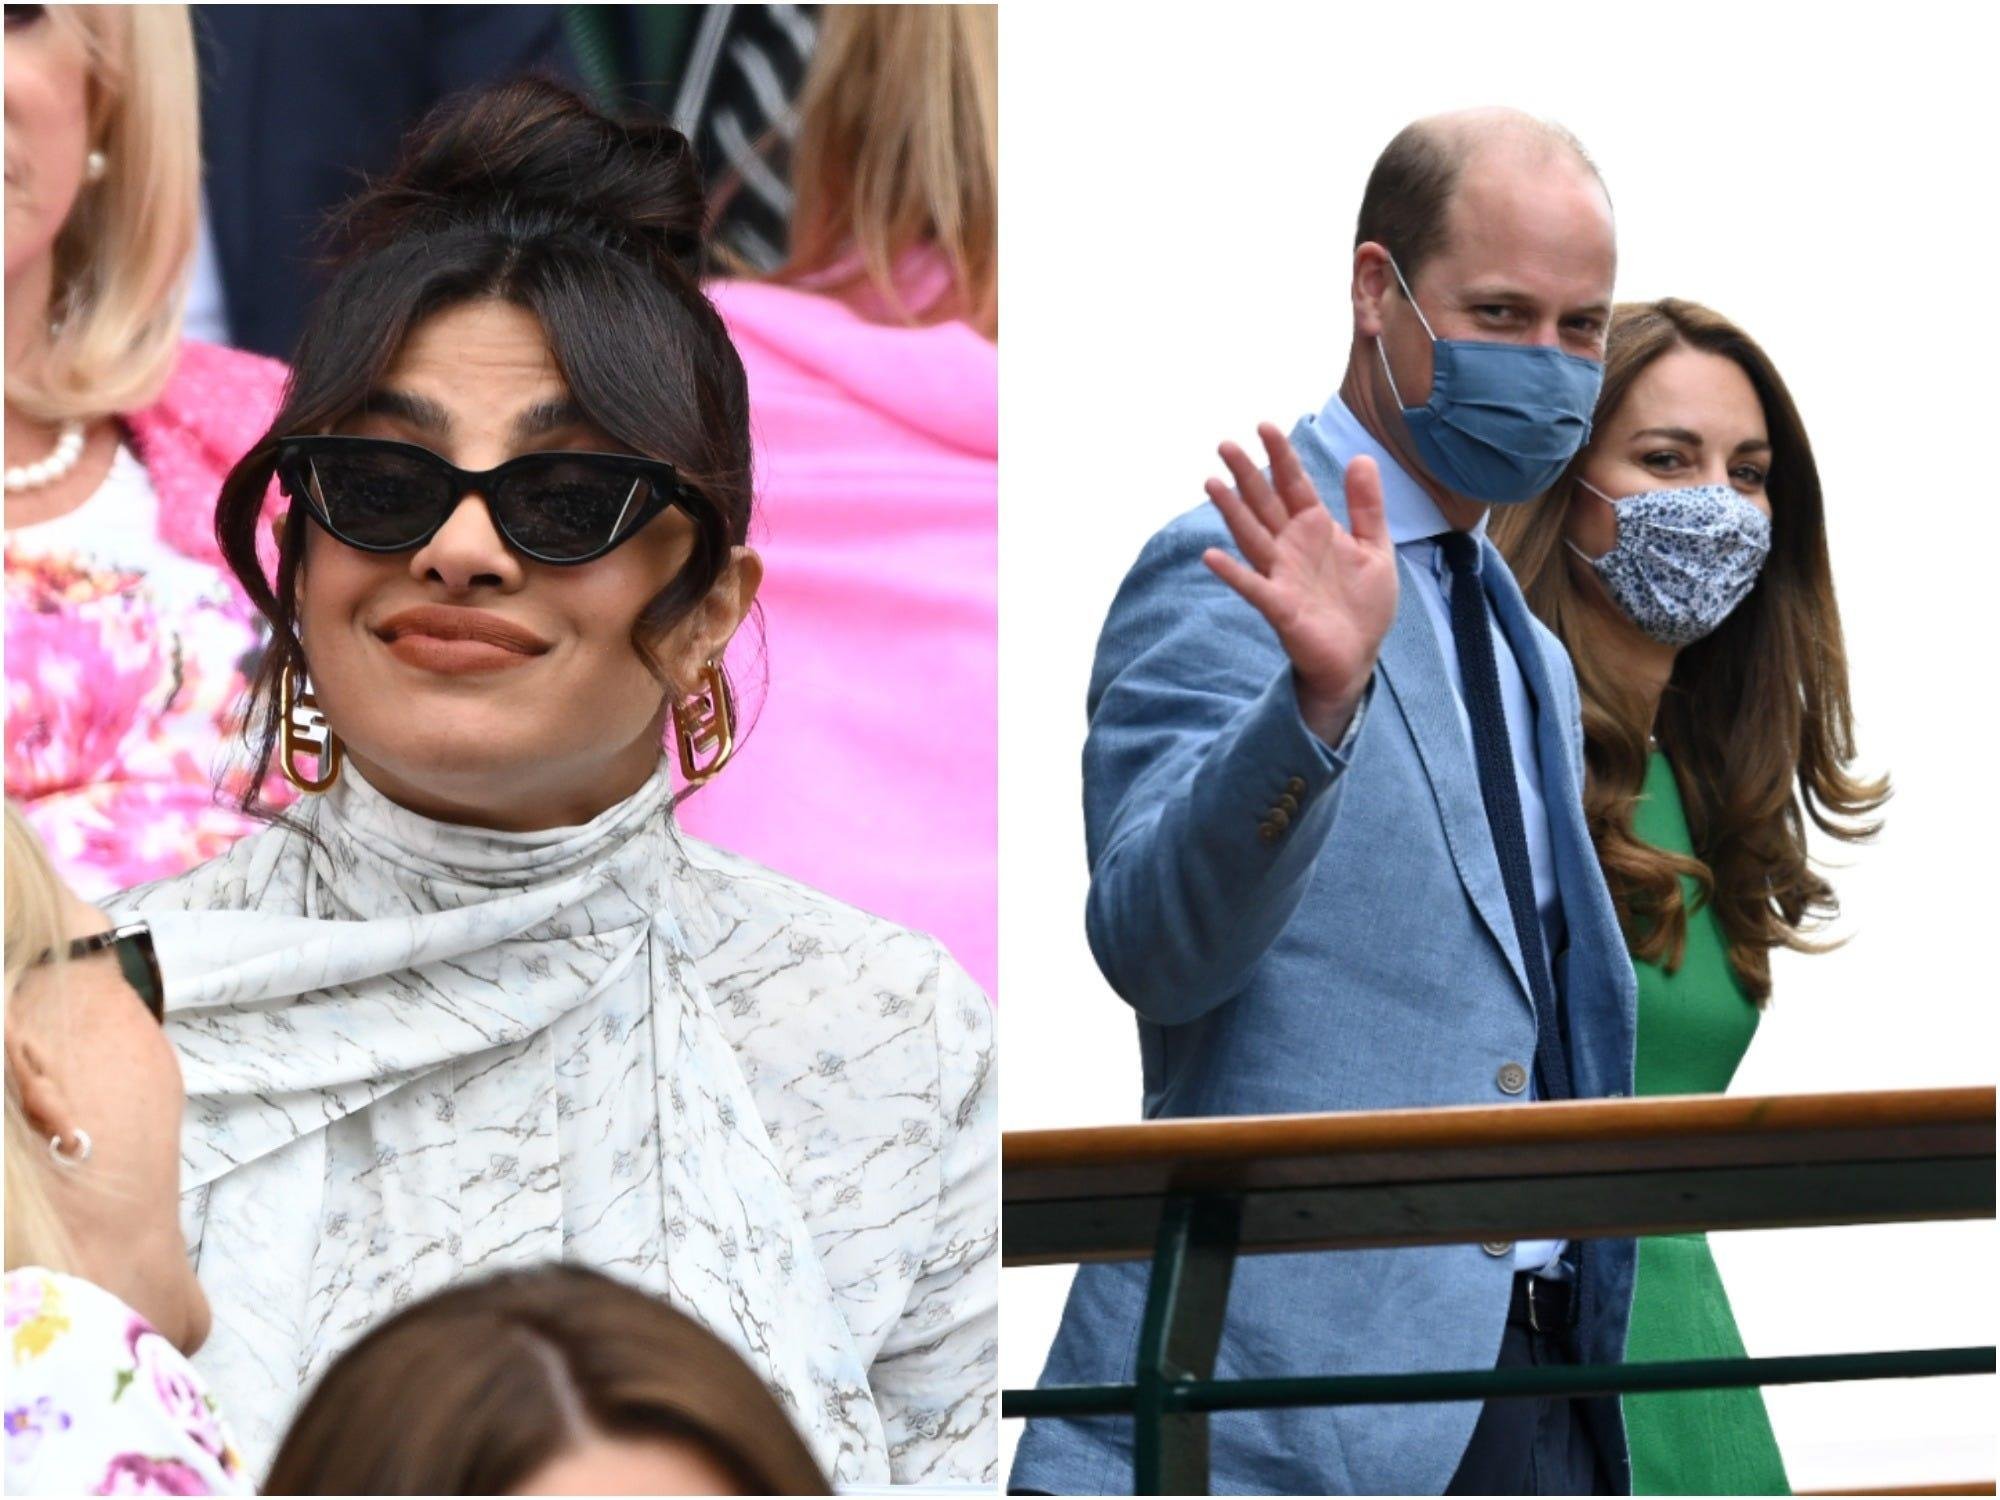 Meghan Markle's friend Priyanka Chopra Jonas appeared to ignore Prince William and Kate Middleton's arrival at Wimbledon